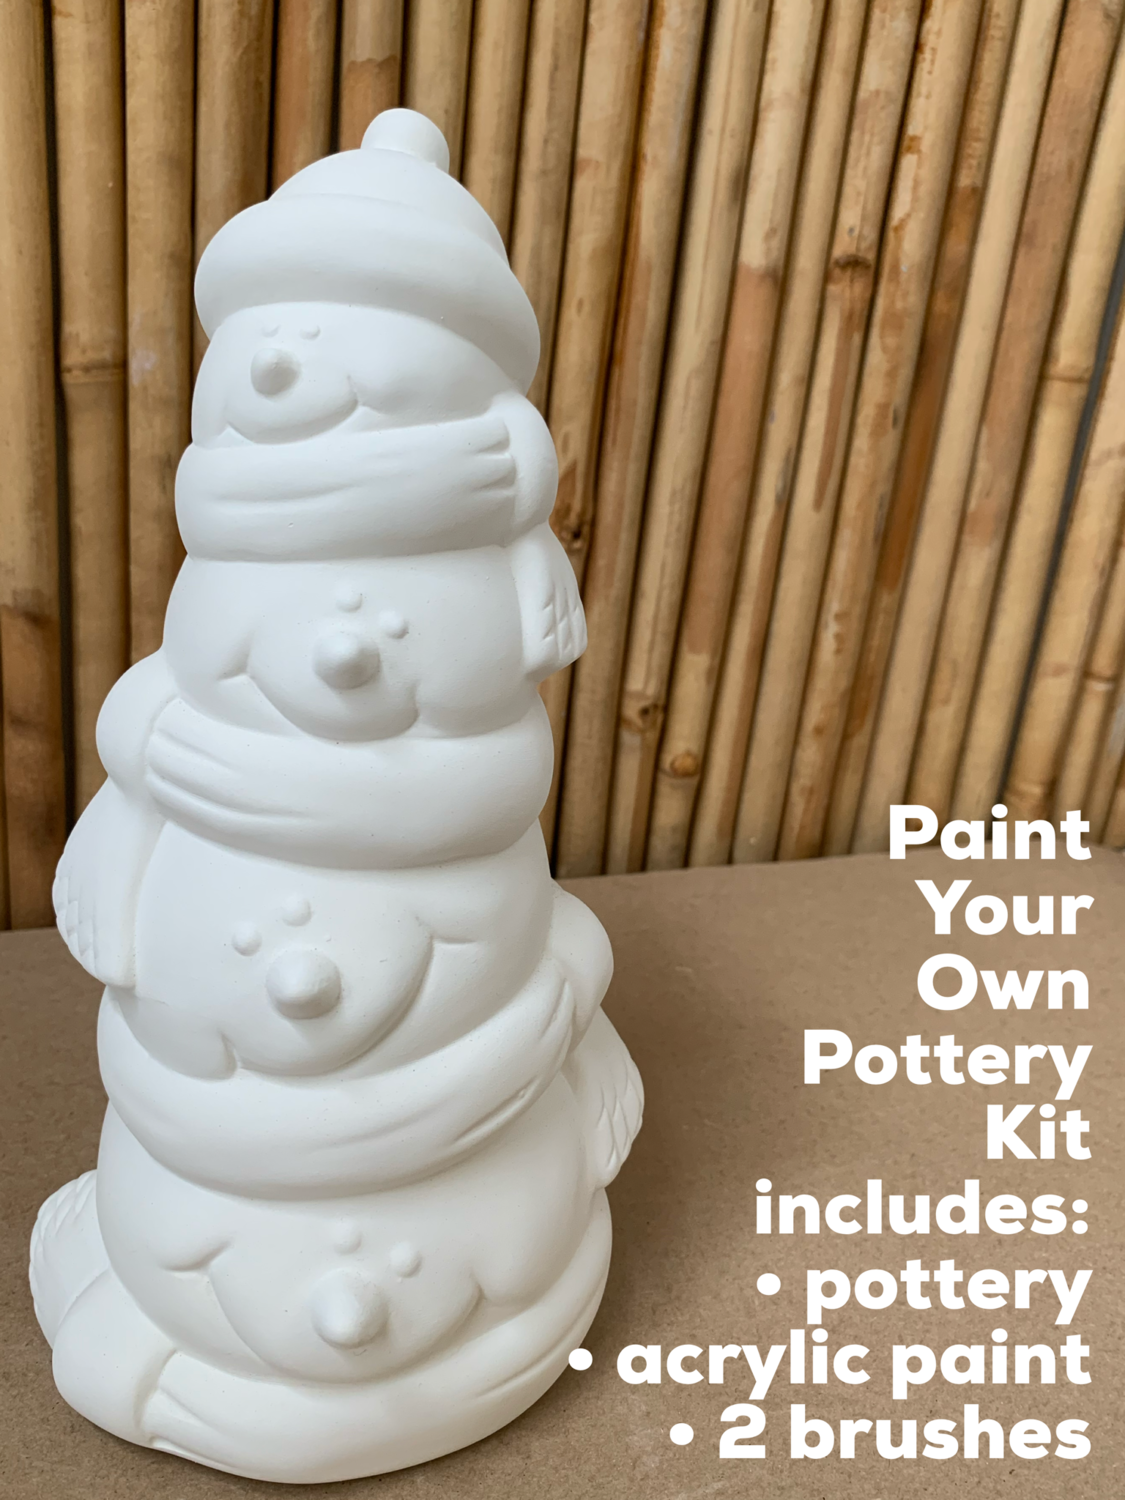 NO FIRE Paint Your Own Pottery Kit -  Ceramic Snowman Stack Bank Acrylic Painting Kit